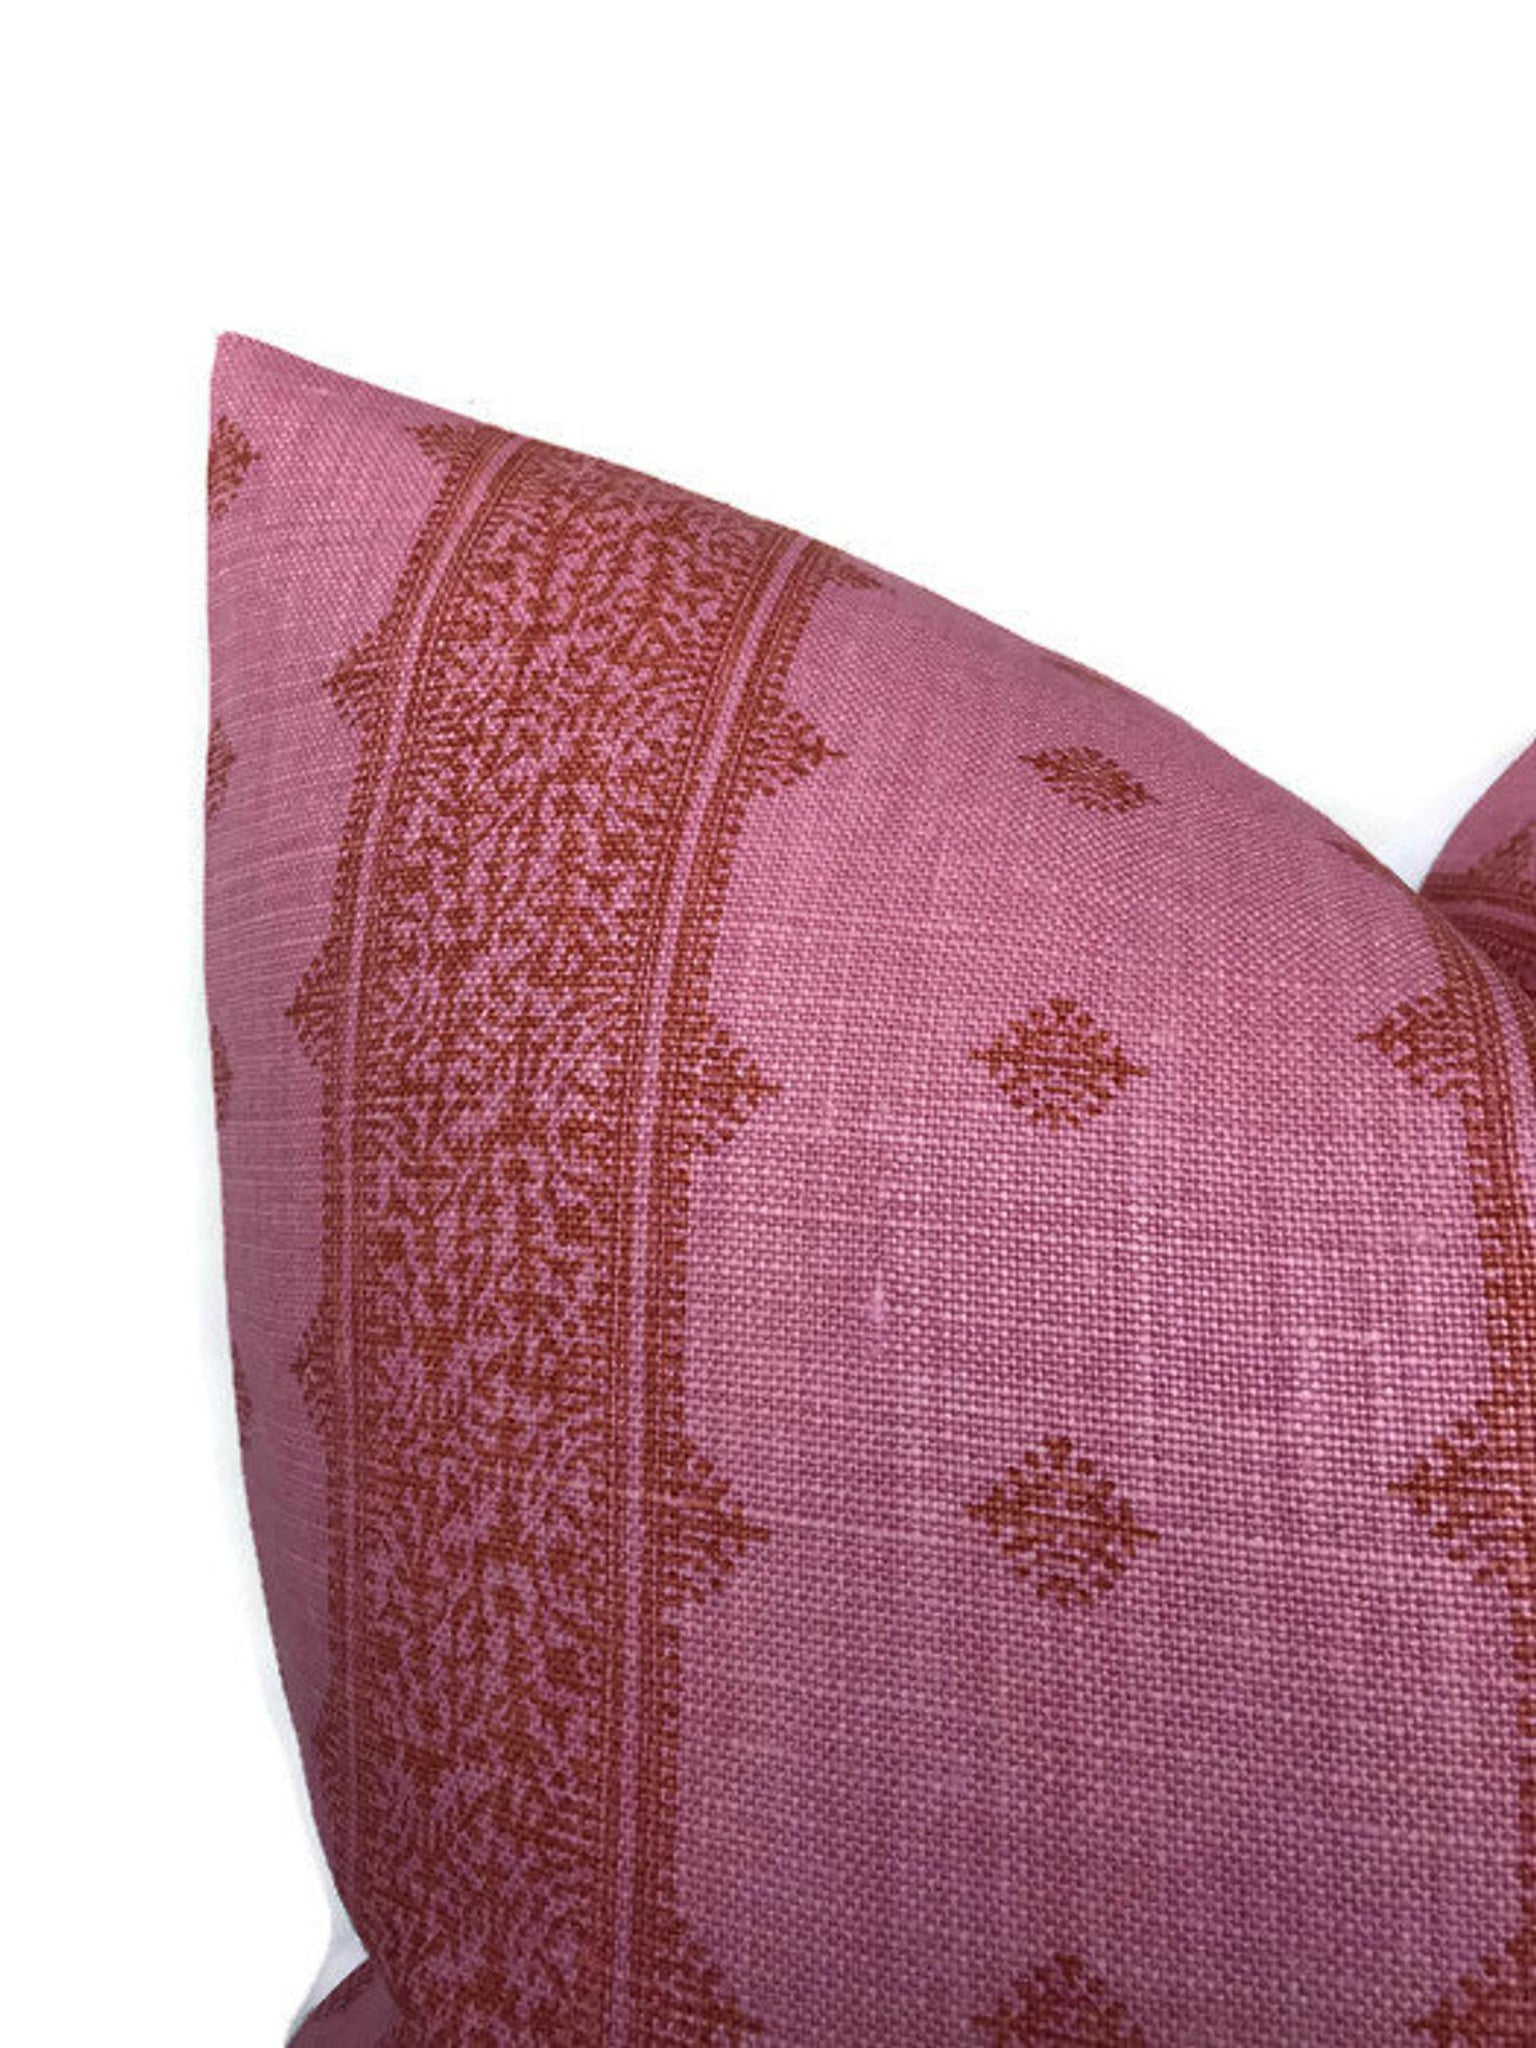 Peter Dunham Fez Pillow Cover in Pink and Orange